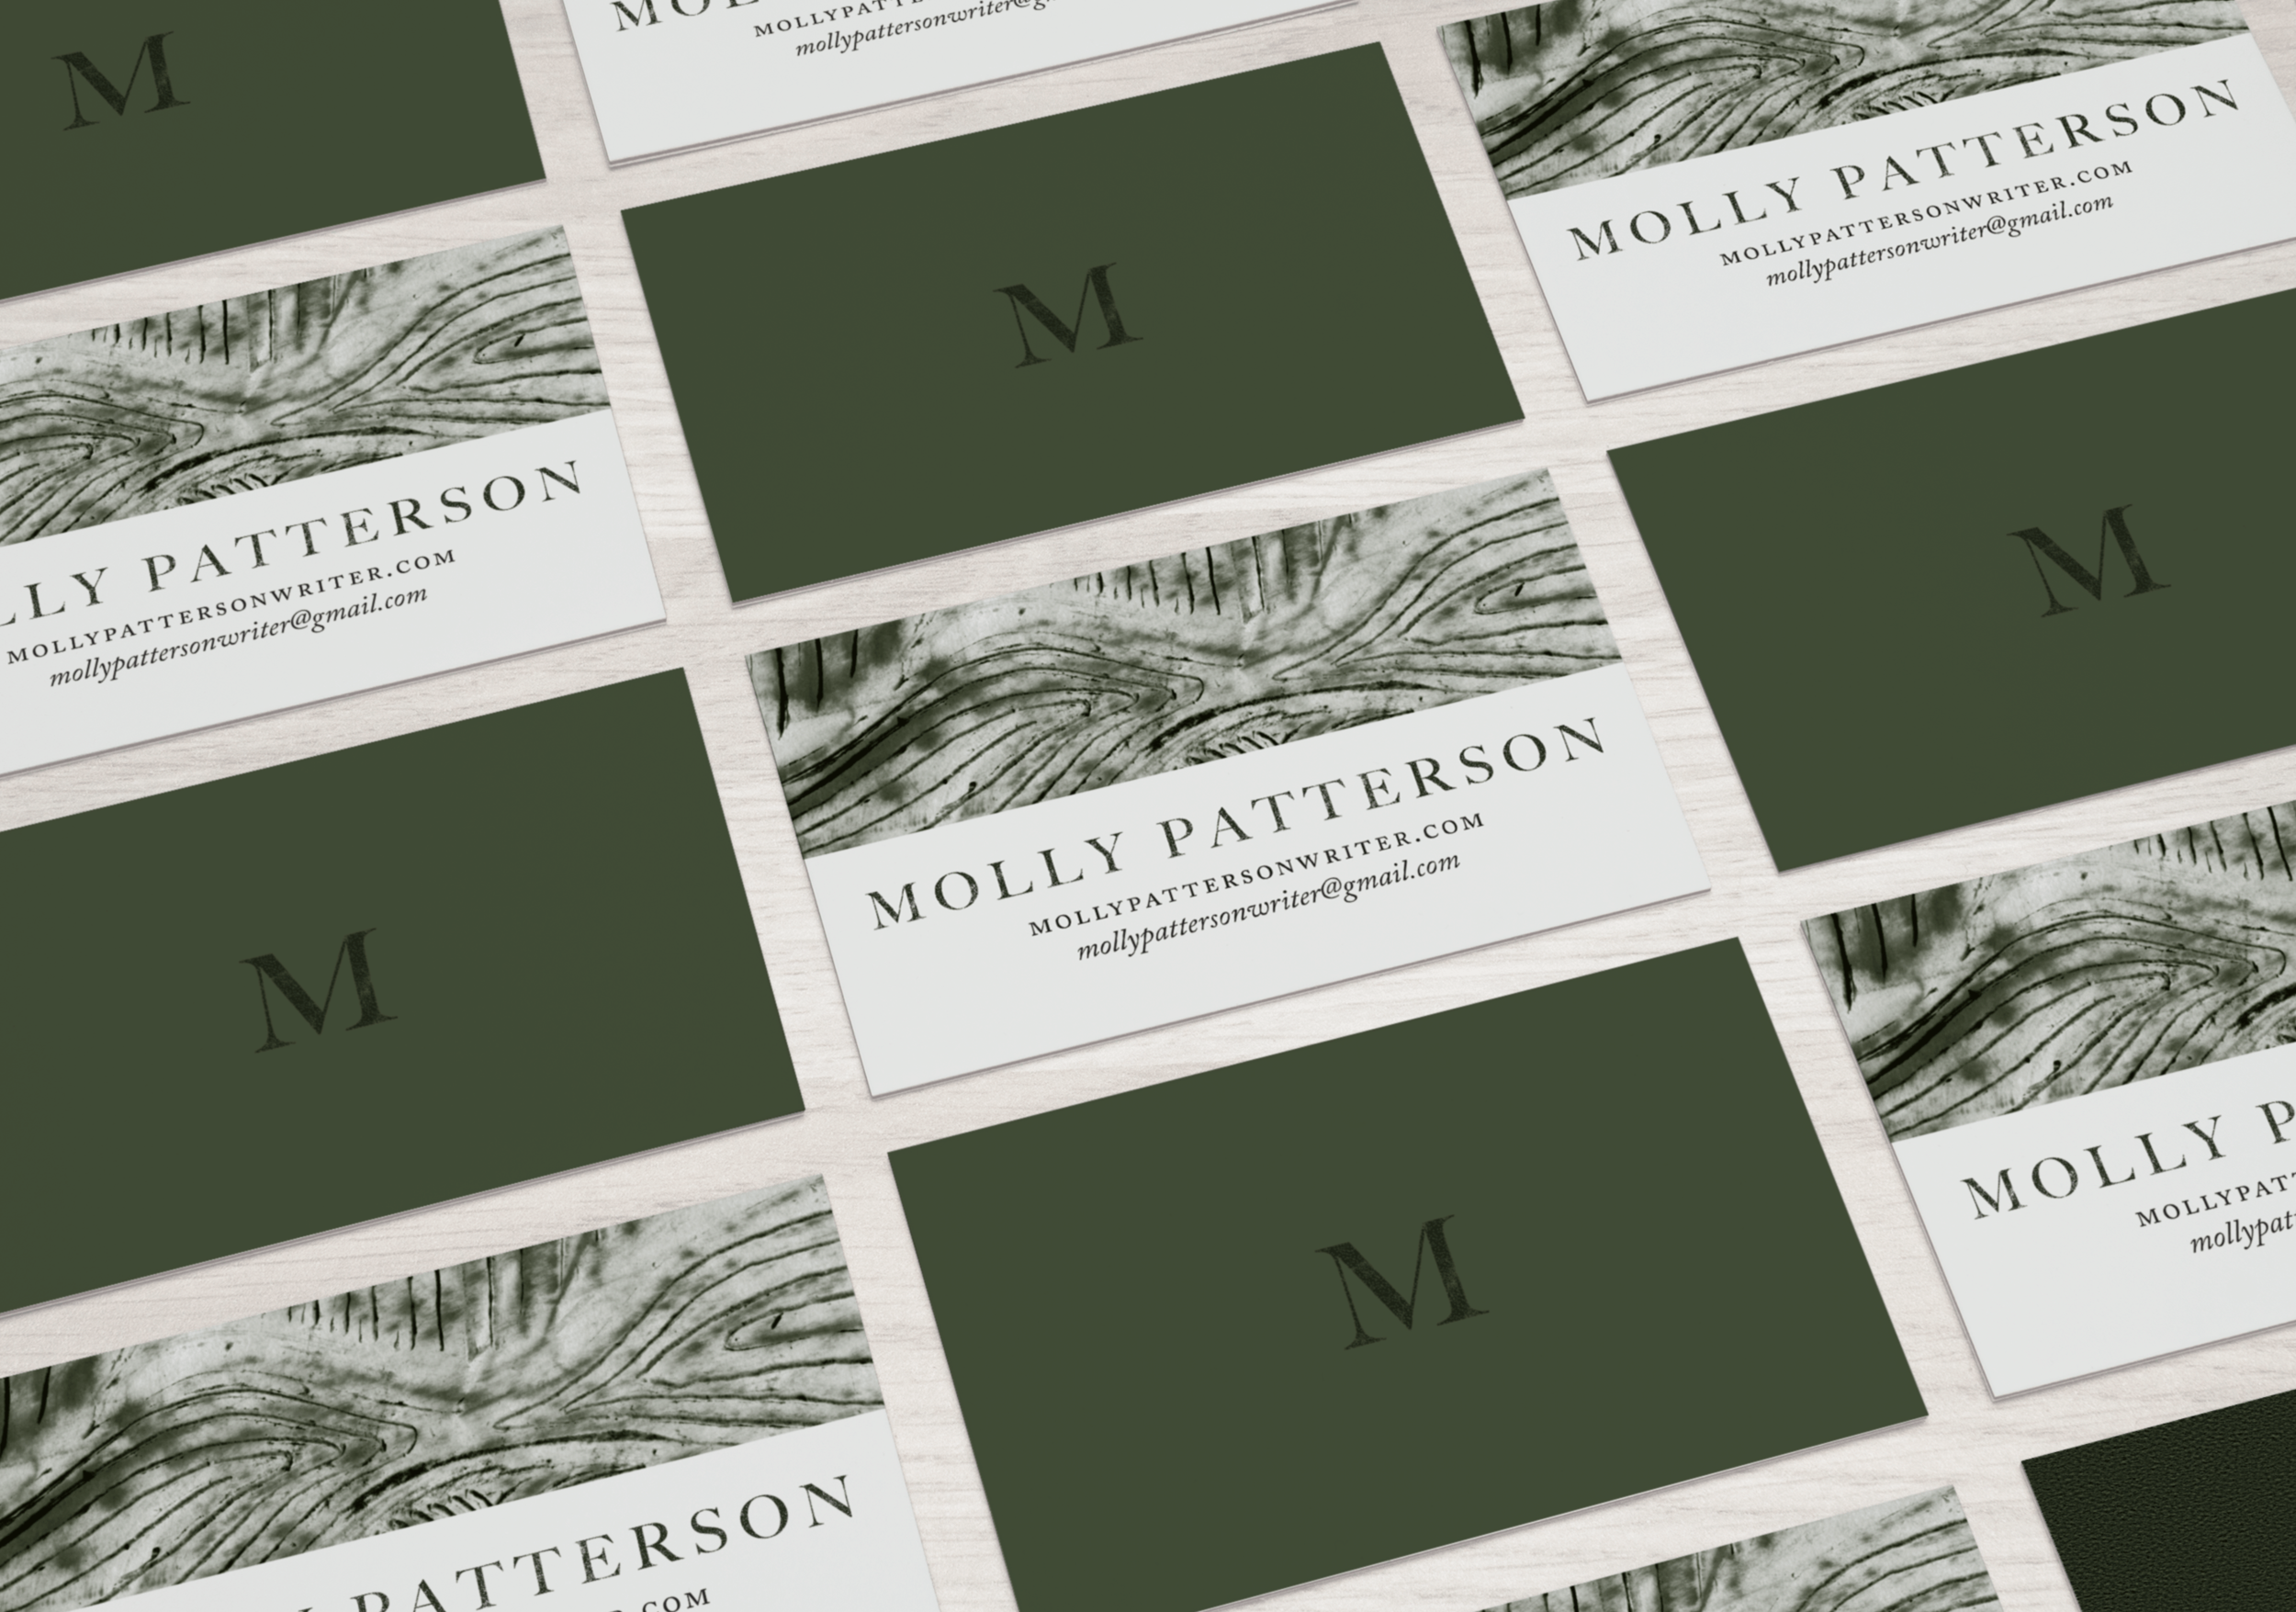 Molly Patterson Business Cards by Nikkita.Co | http://nikkita.co